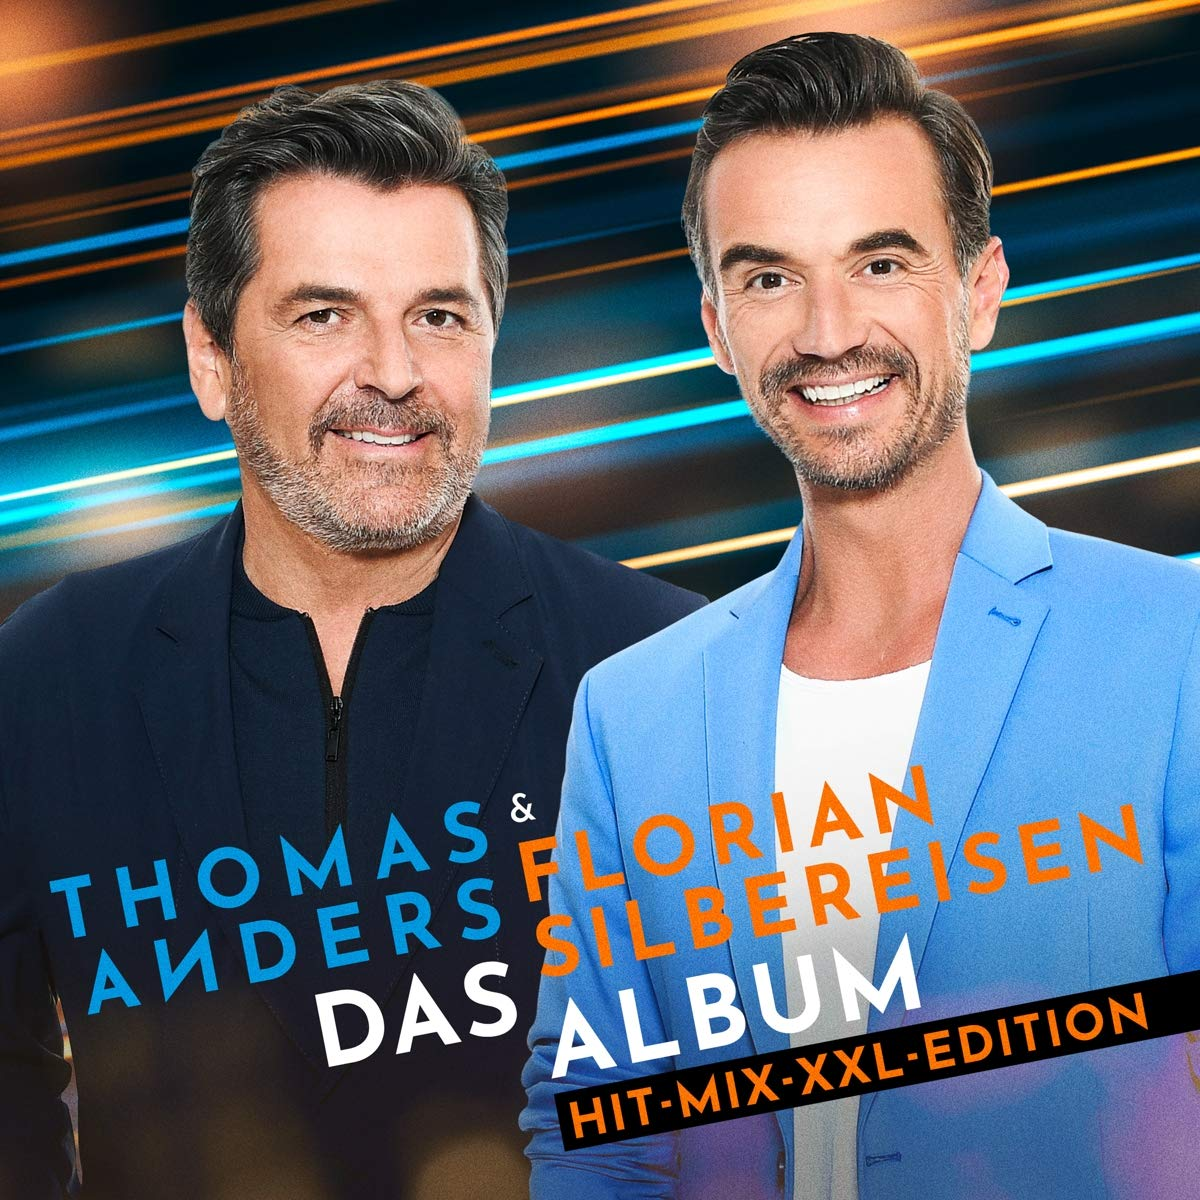 THOMAS ANDERS & FLORIAN SILBEREISEN * Das Album (Hit-Mix-XXL-Version)  (Doppel-CD)